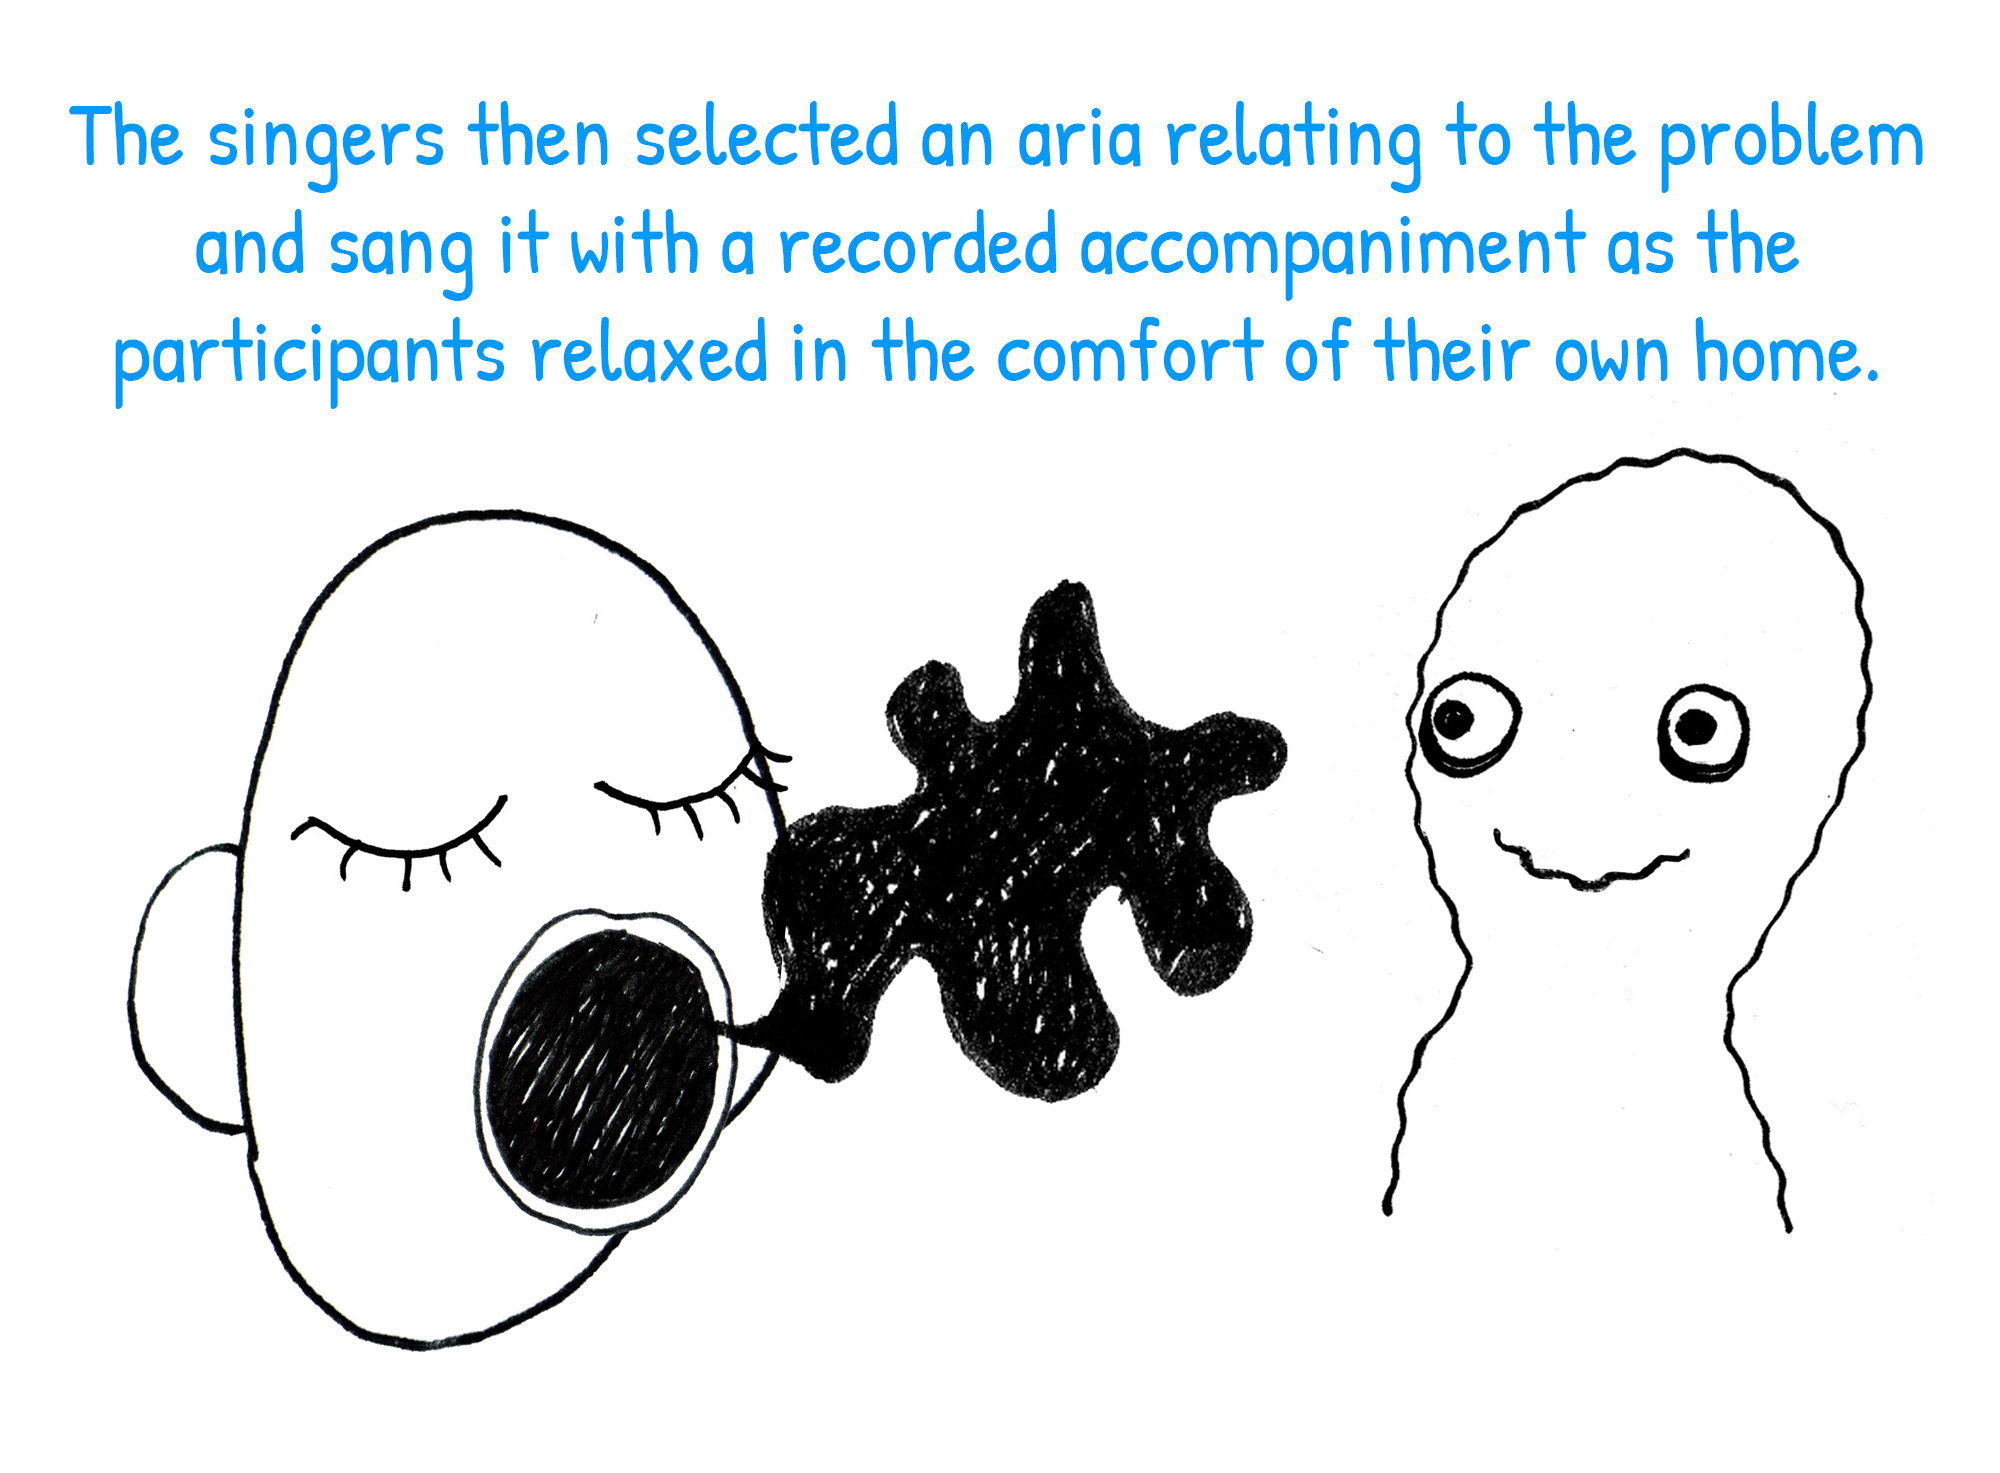 The singers then selected an aria relating to the problem